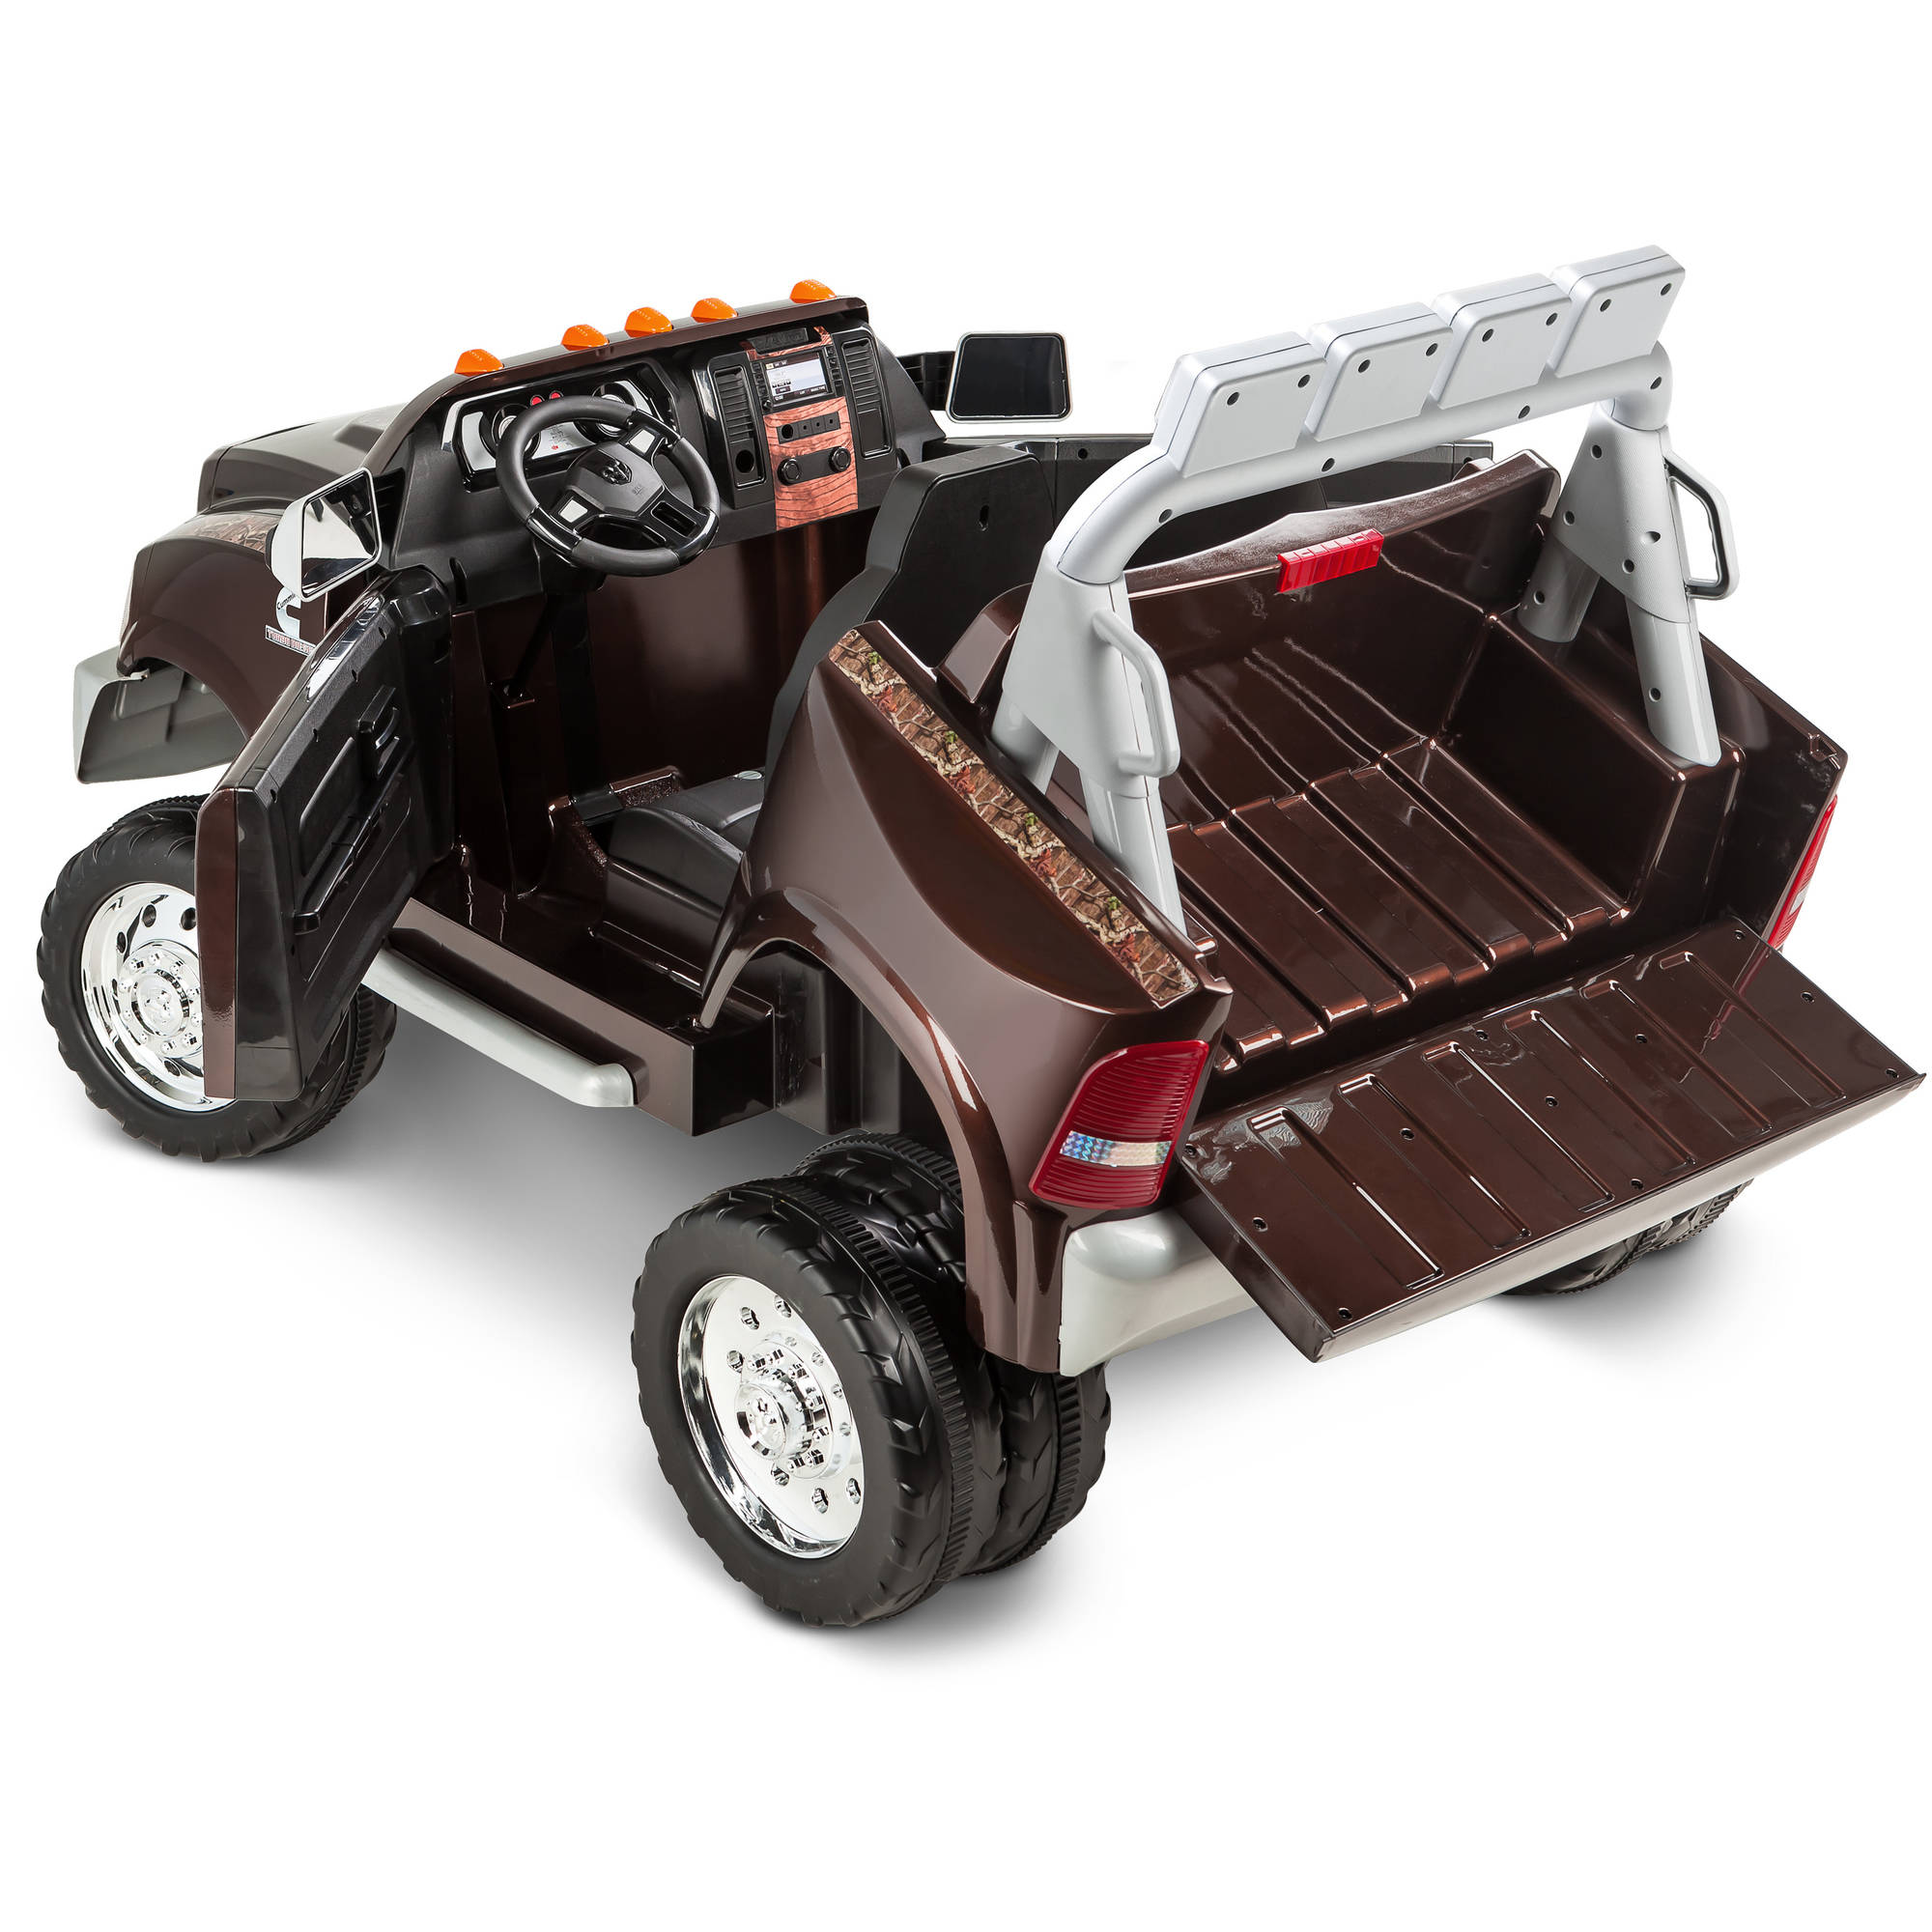 kidtrax ram 3500 dually longhorn edition 12 volt battery powered ride on walmartcom